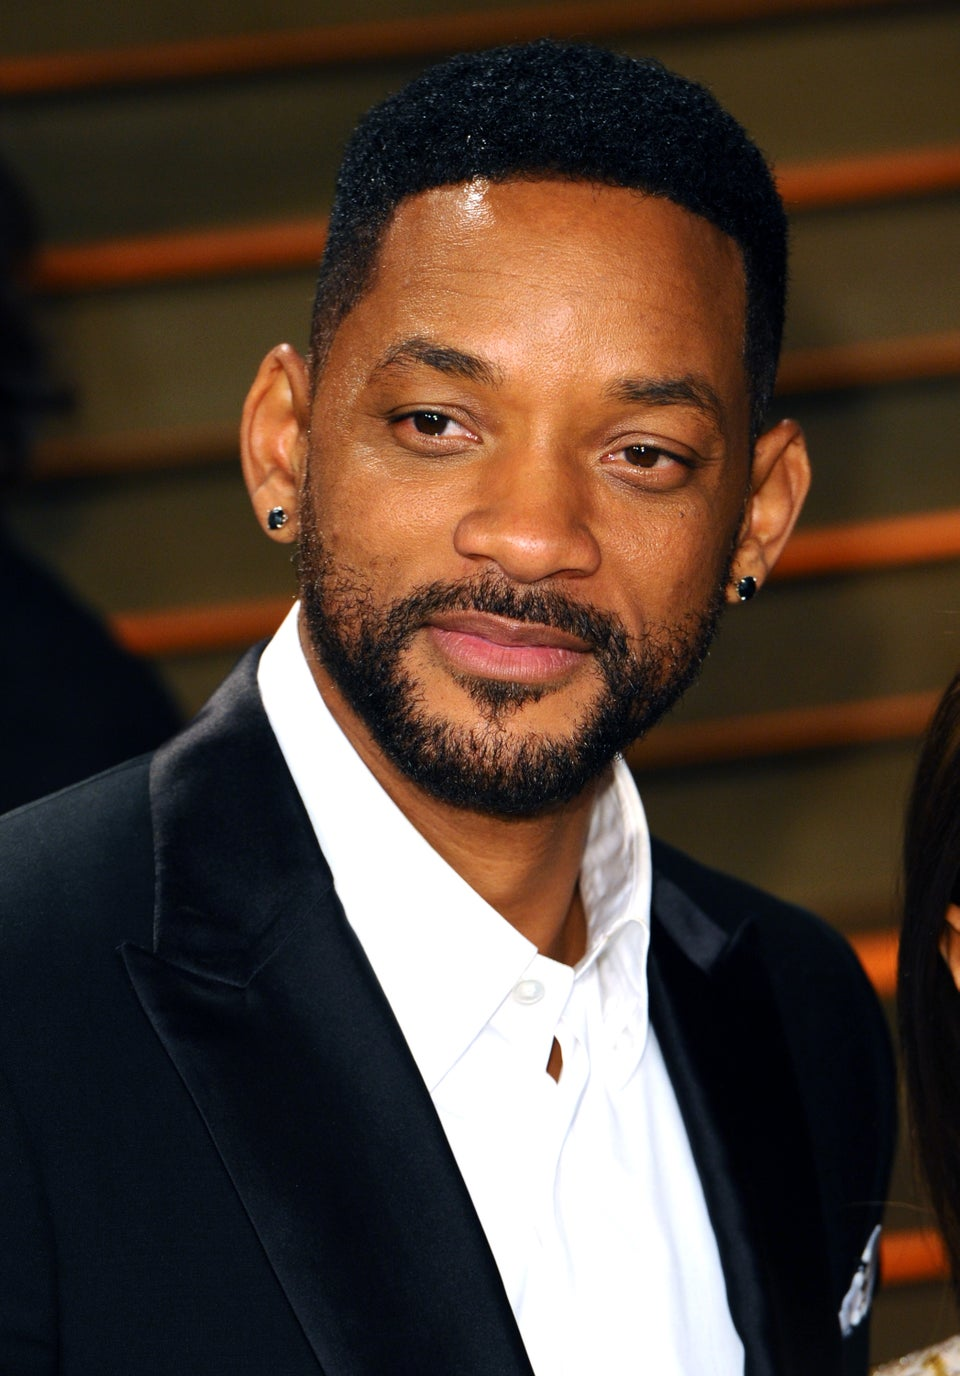 Will Smith's Take on Racism in Hollywood Has Us Scratching Our Heads